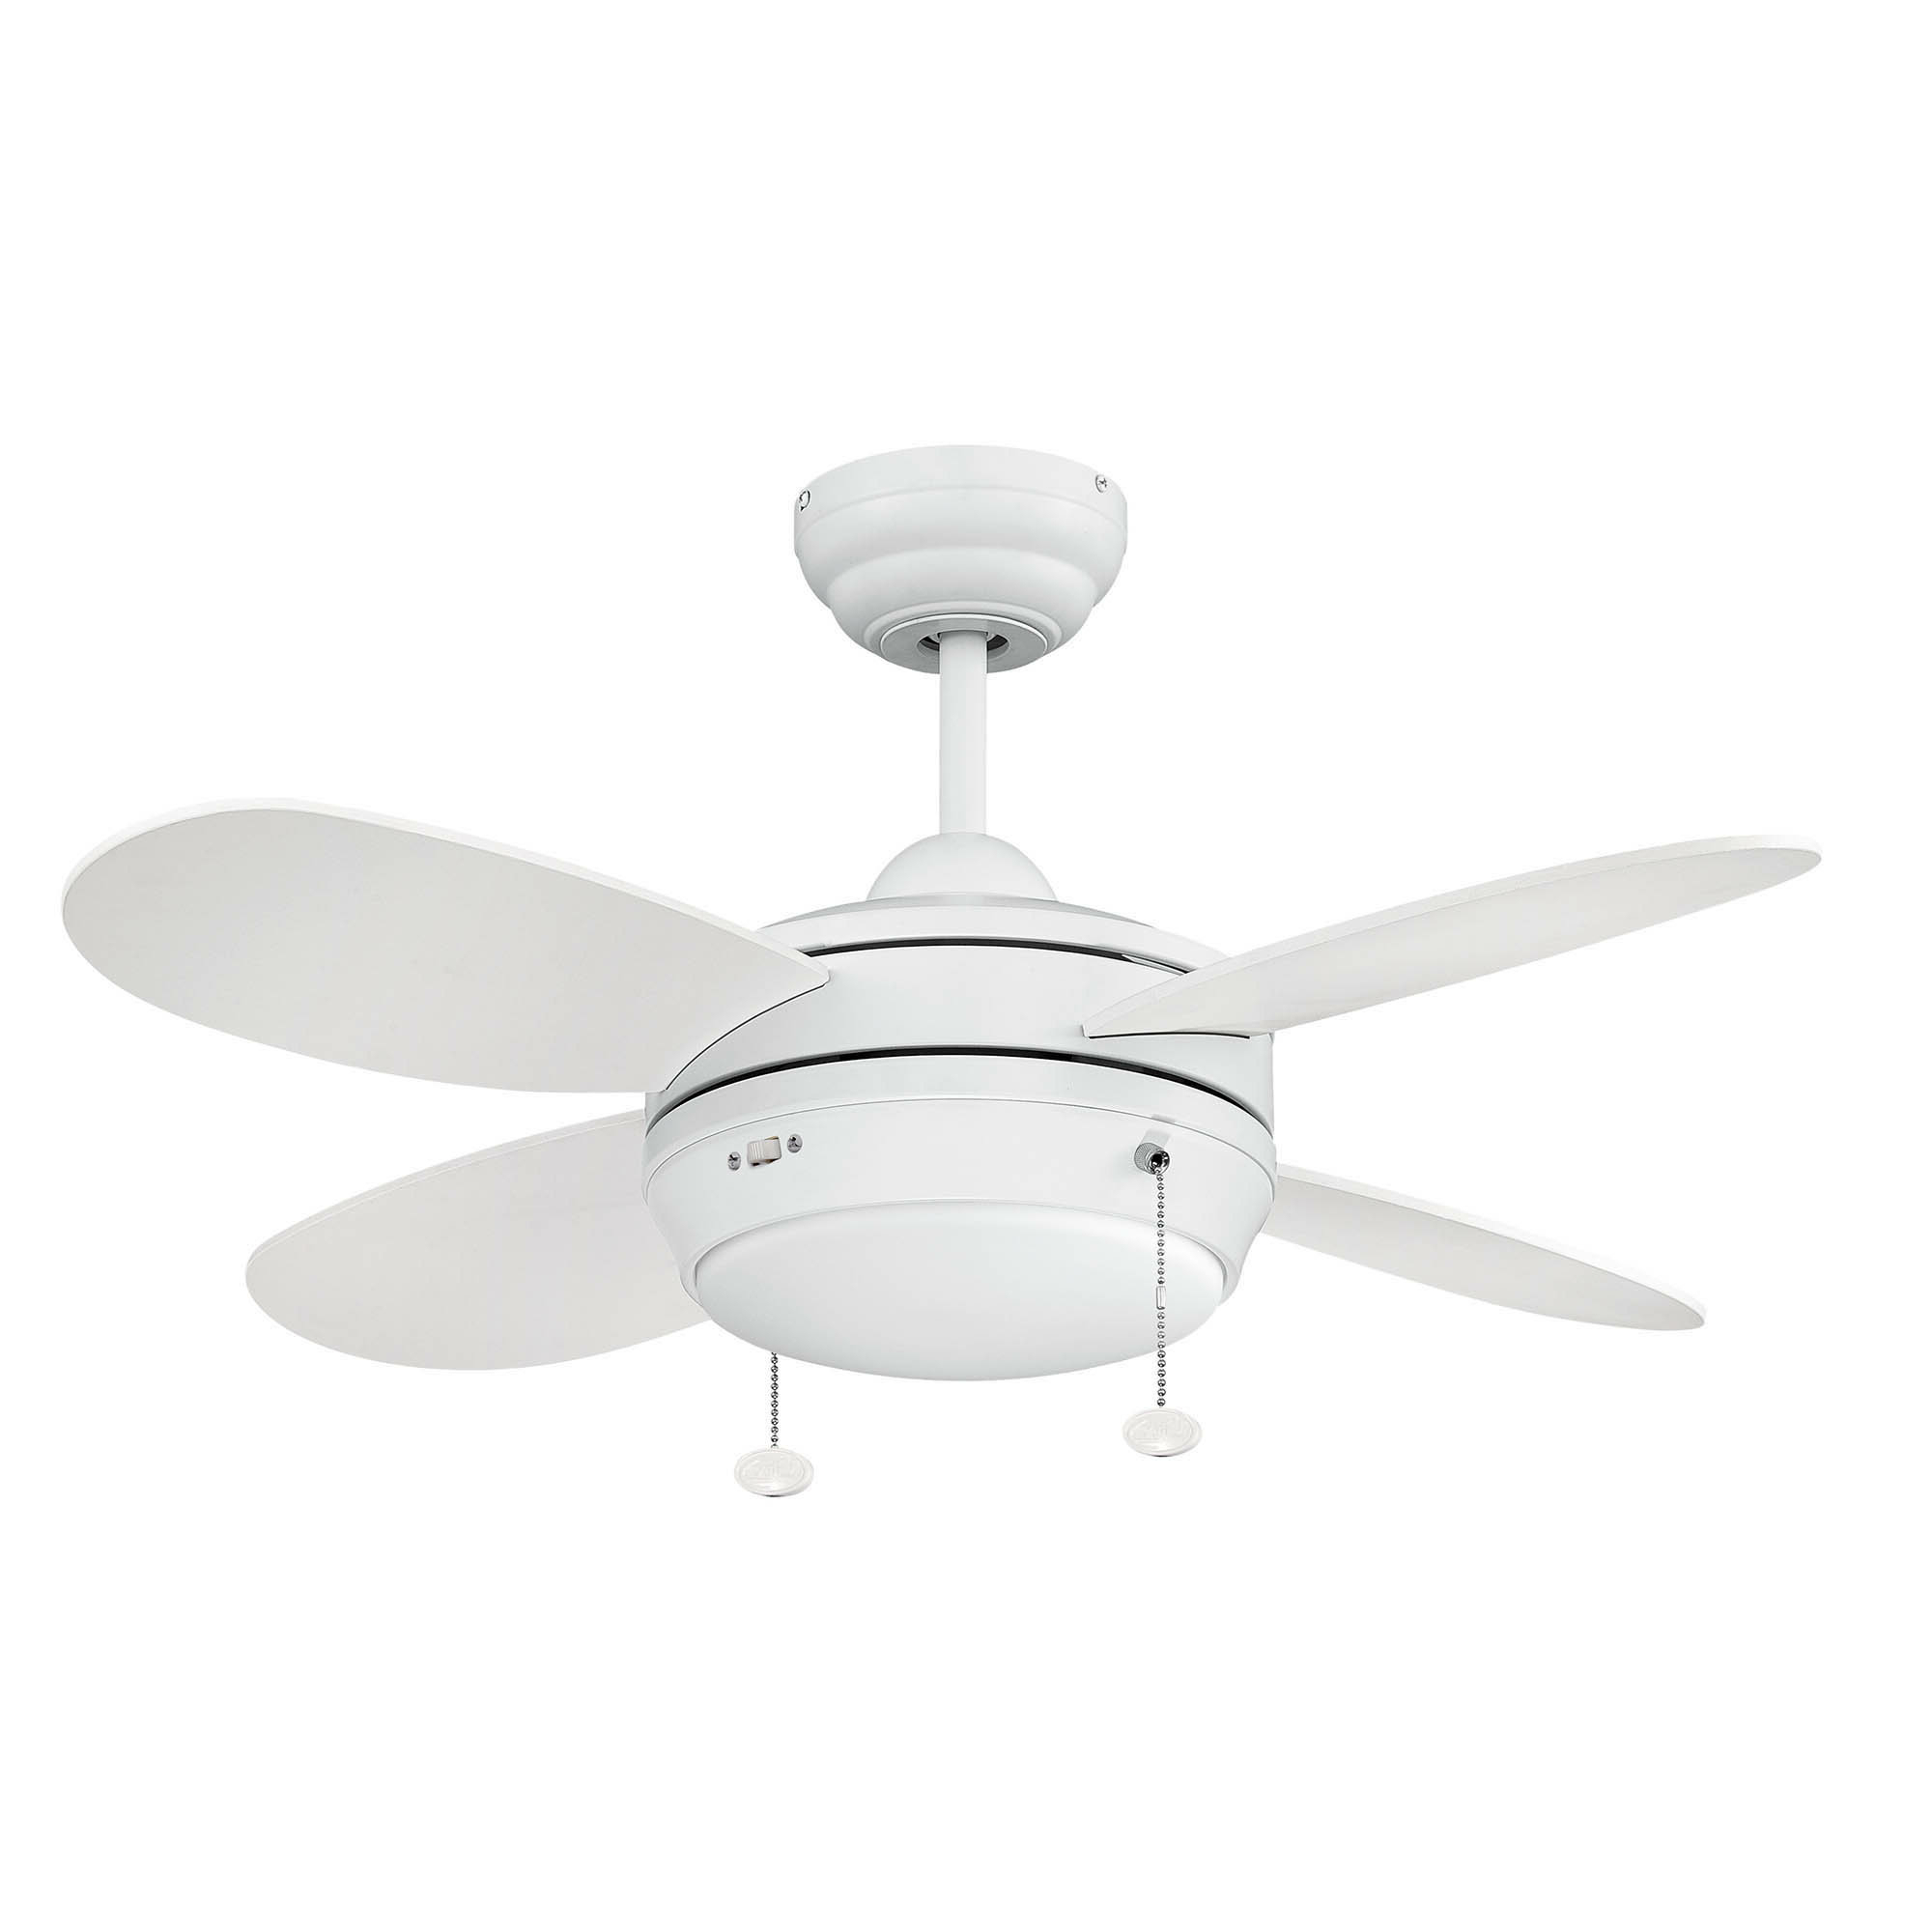 "36"" Kopnisky Dual Mount 4 Blade Ceiling Fan, Light Kit Included Intended For Popular Stewardson 4 Blade Ceiling Fans (Gallery 11 of 20)"